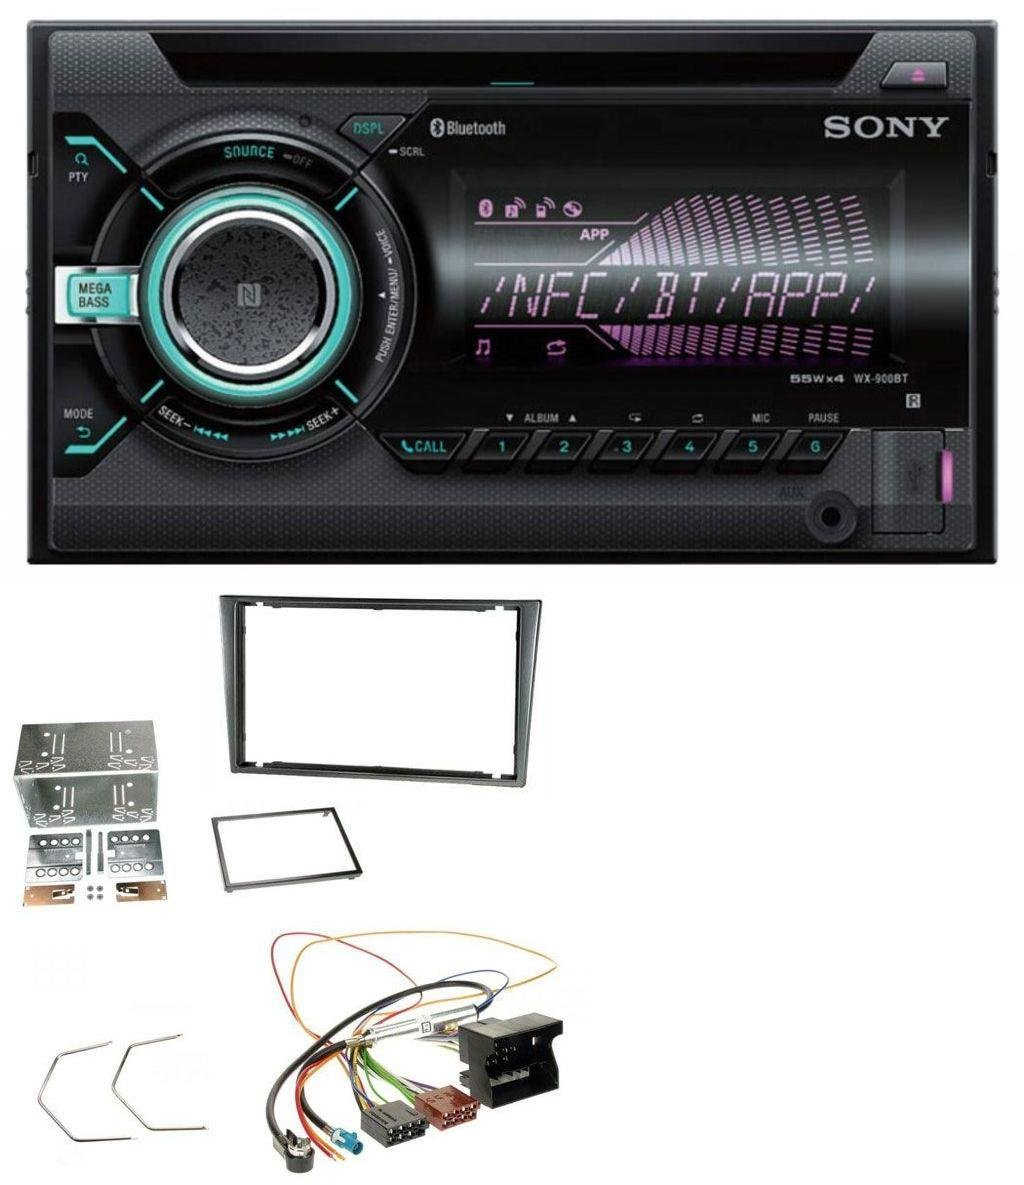 caraudio24 Sony WX-900BT USB Aux MP3 2DIN CD Bluetooth Autoradio fü r Opel Corsa C Quadlock 2000-2006 Aluminium